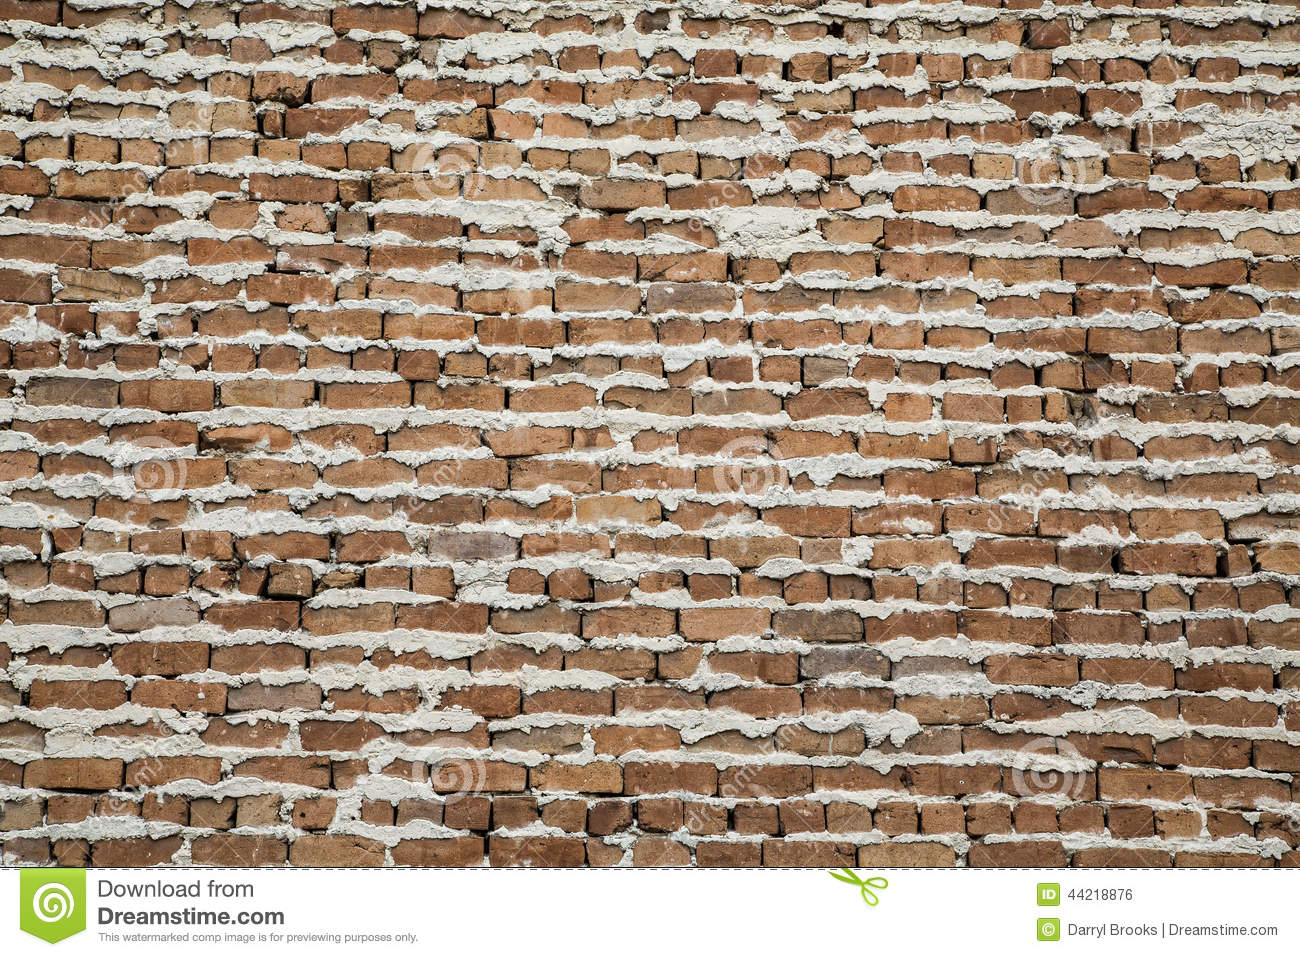 old-brick-wall-extruded-mortar-background-texture-44218876.jpg